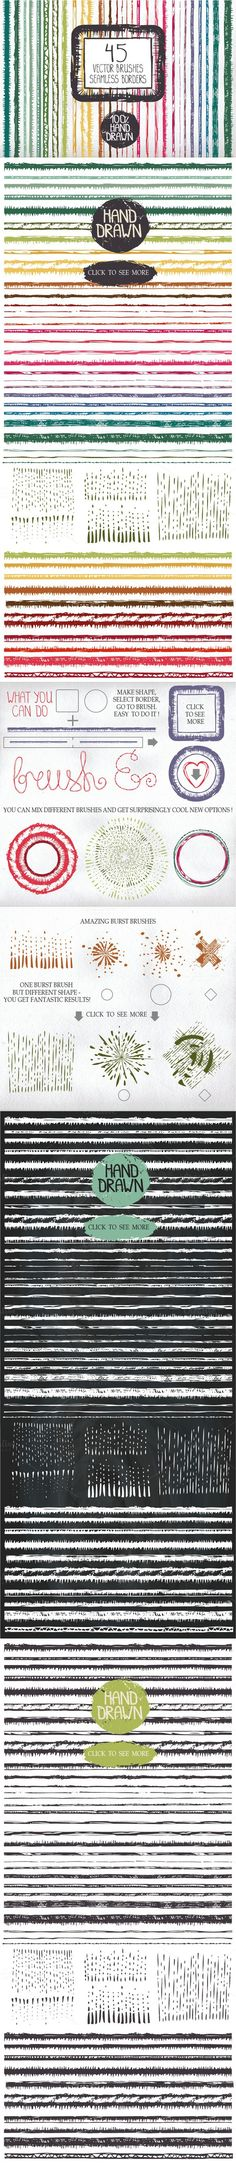 90 Hand Drawn Arrow Symbol Brushes Photoshop Brushes 400